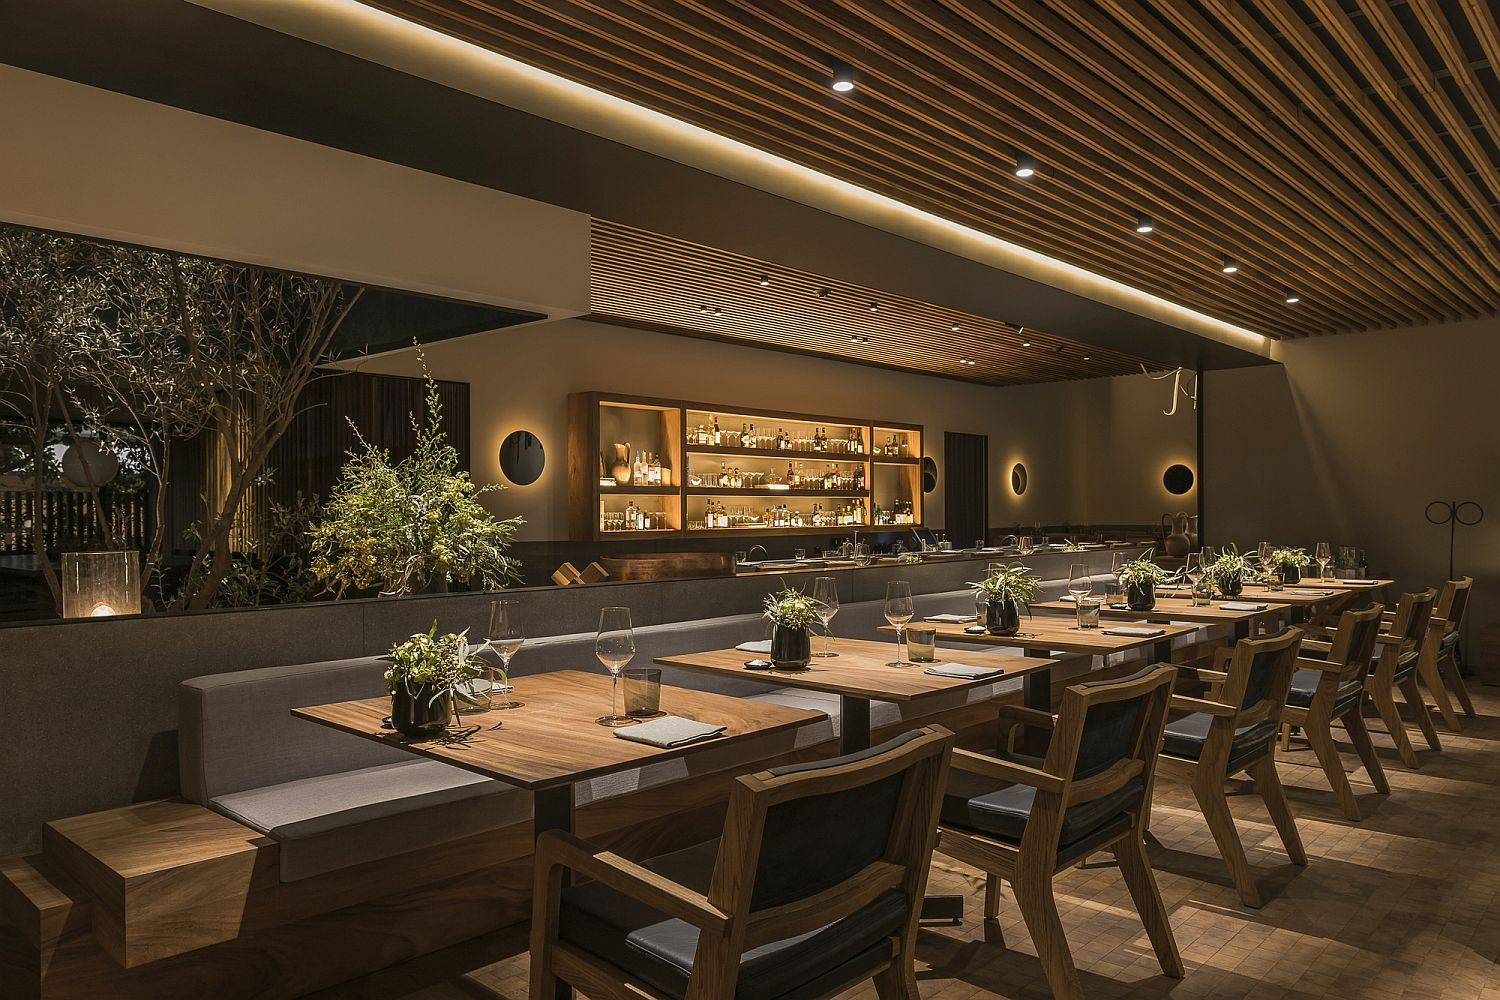 Taste amazing Mexican cuisine at its tasty best set within a modern ambiance at Pujol